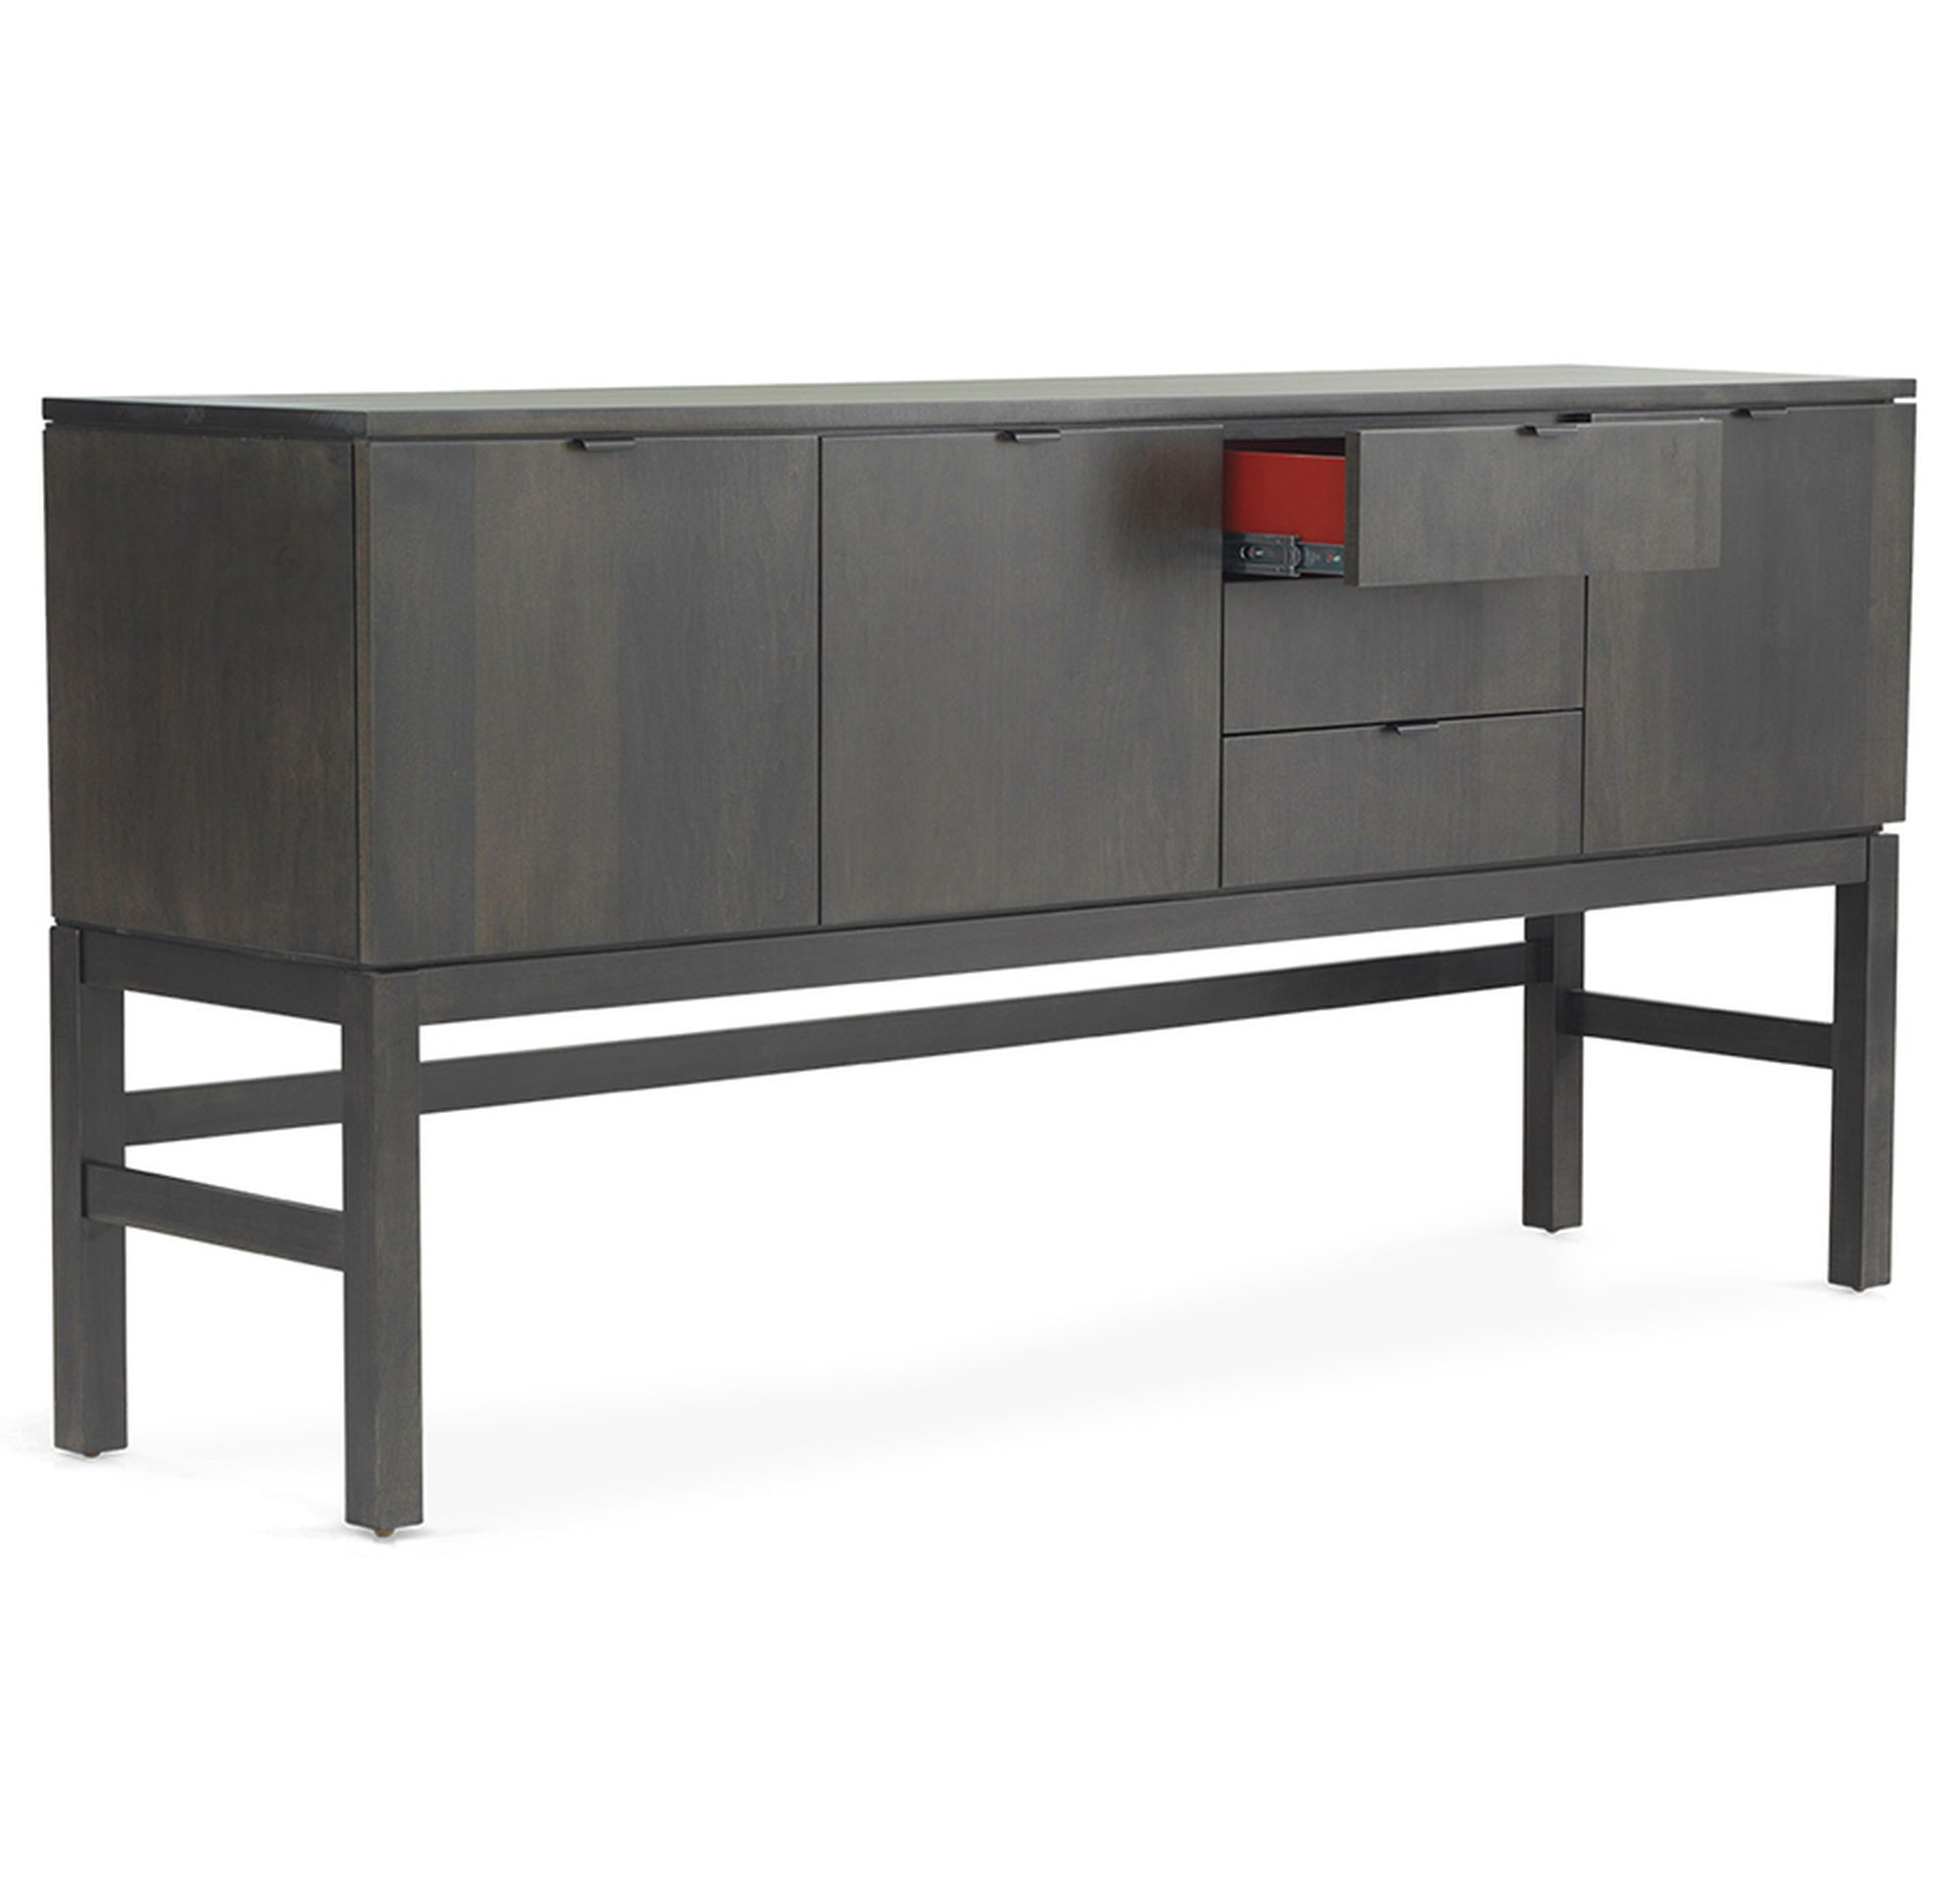 Shop our BRESLIN BUFFET STORM for